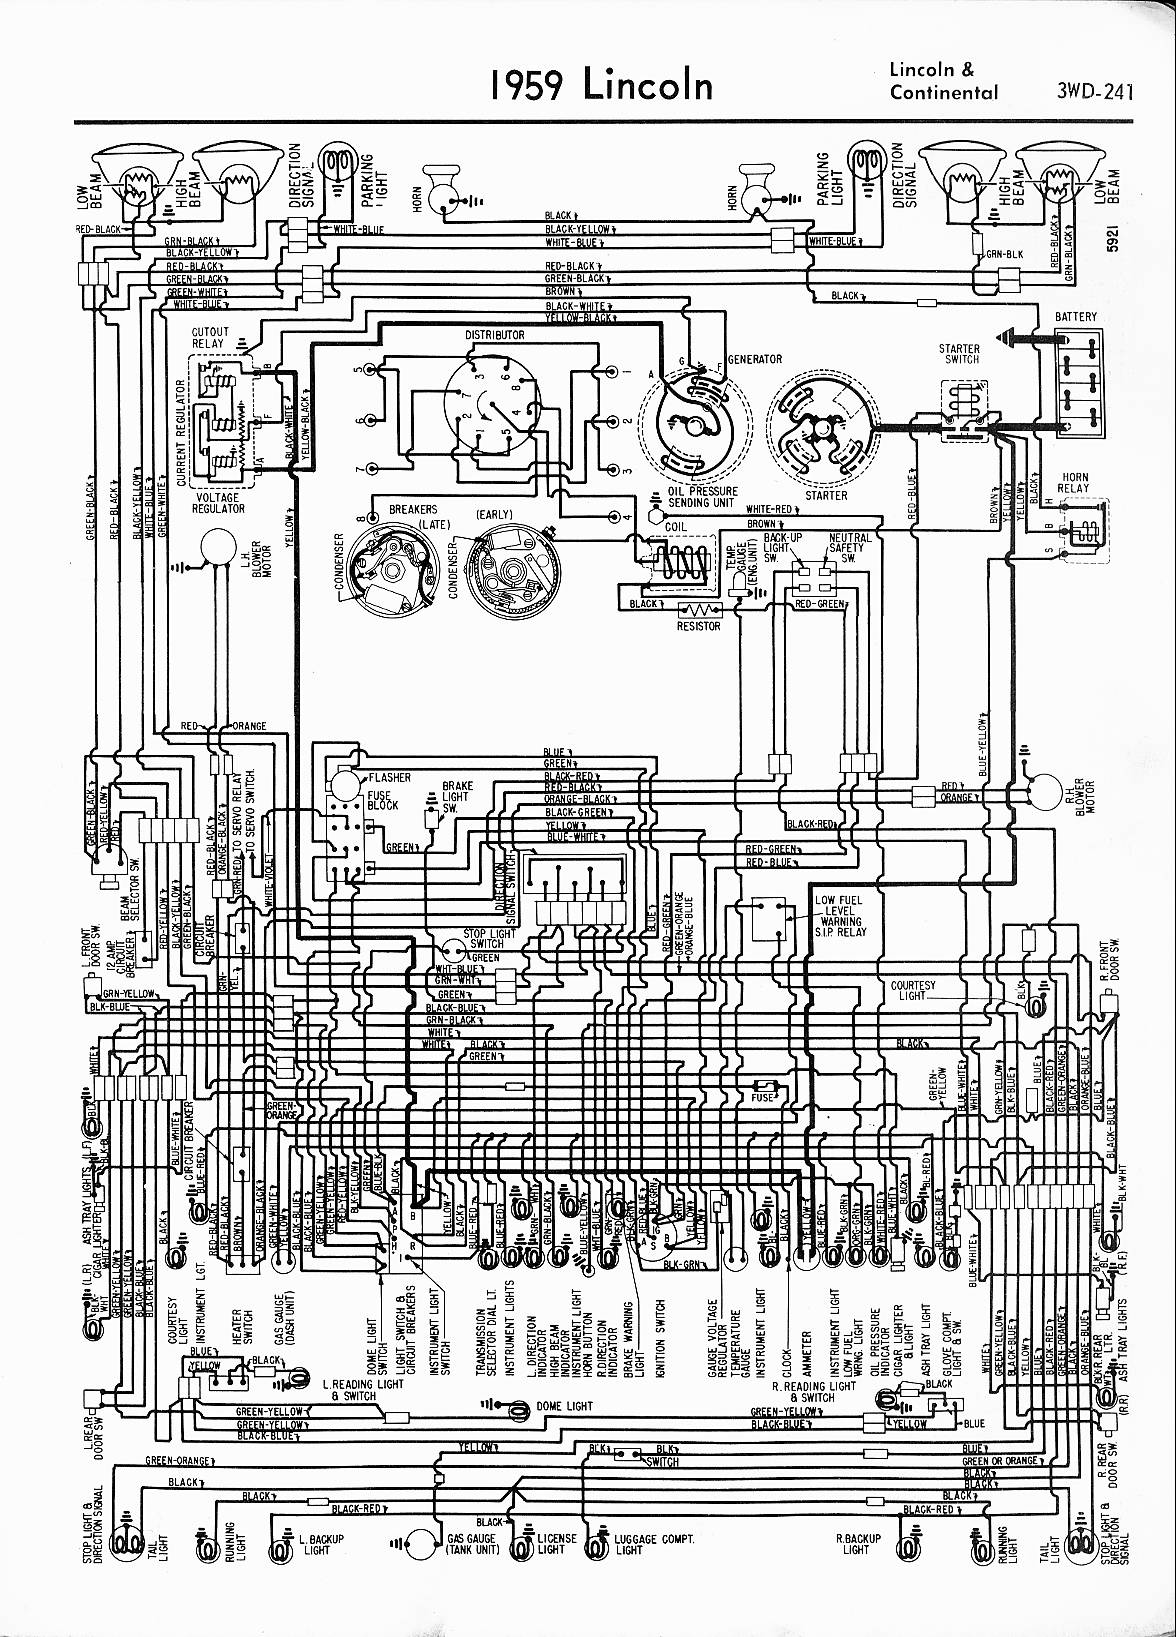 99 Lincoln Continental Fuse Box Diagram Wiring Library 97 Town Car Data Schema 1997 Throttle 67 Diagrams